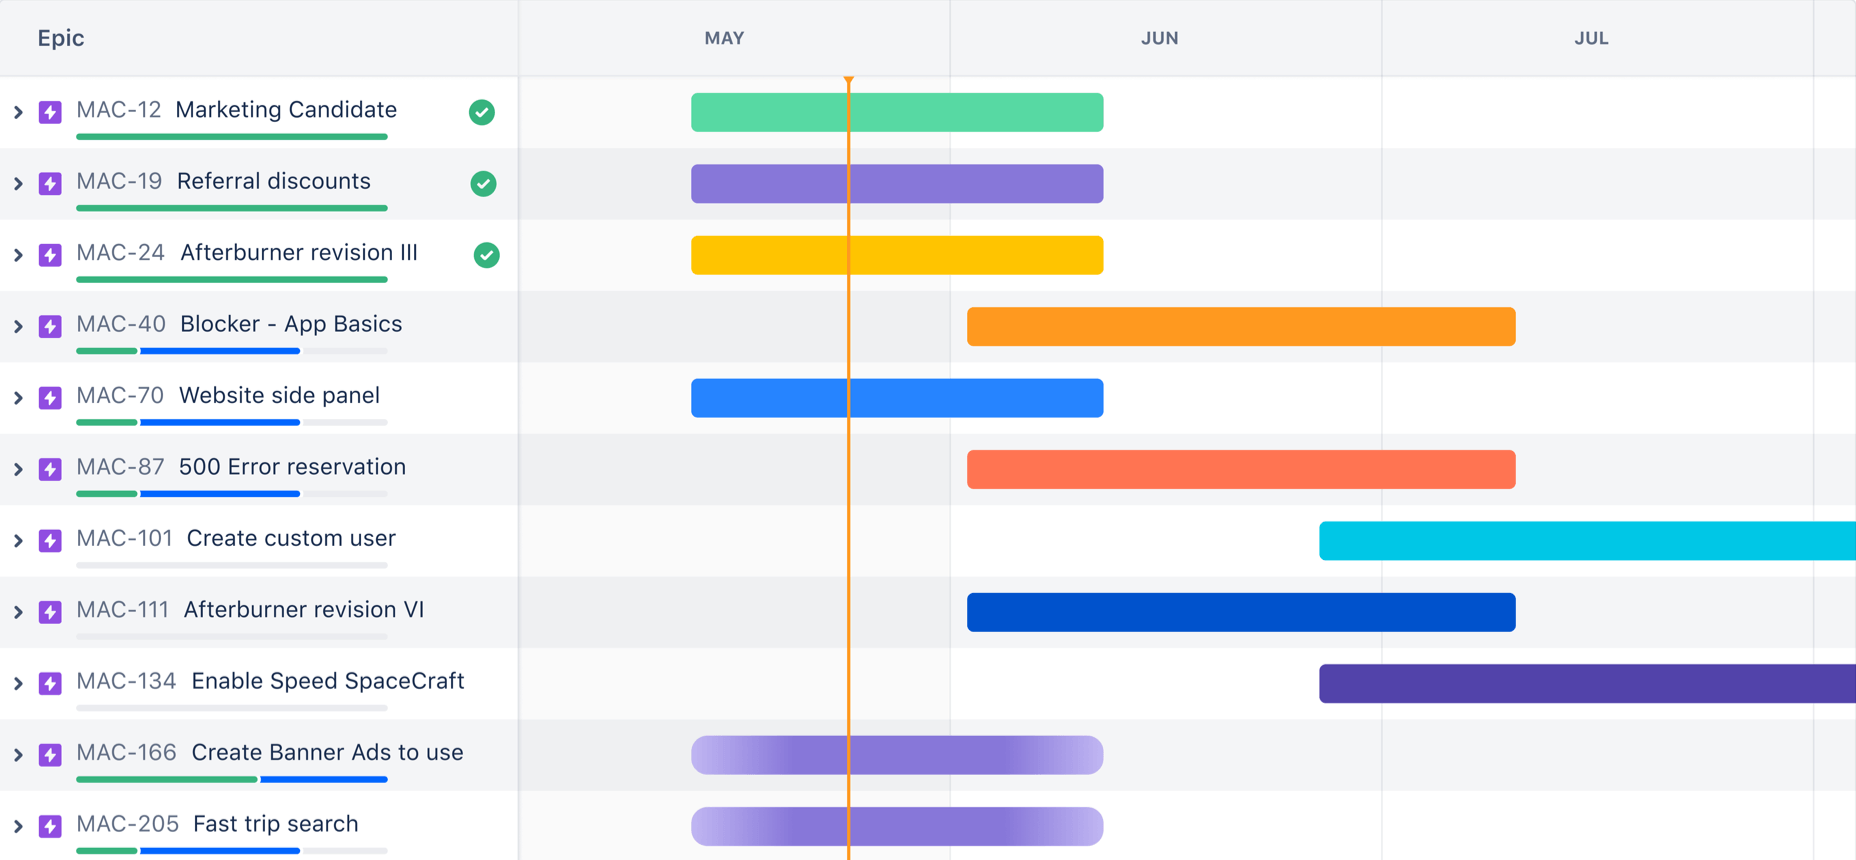 A screenshot of a project-specific Gantt chart | Atlassian Agile Coach